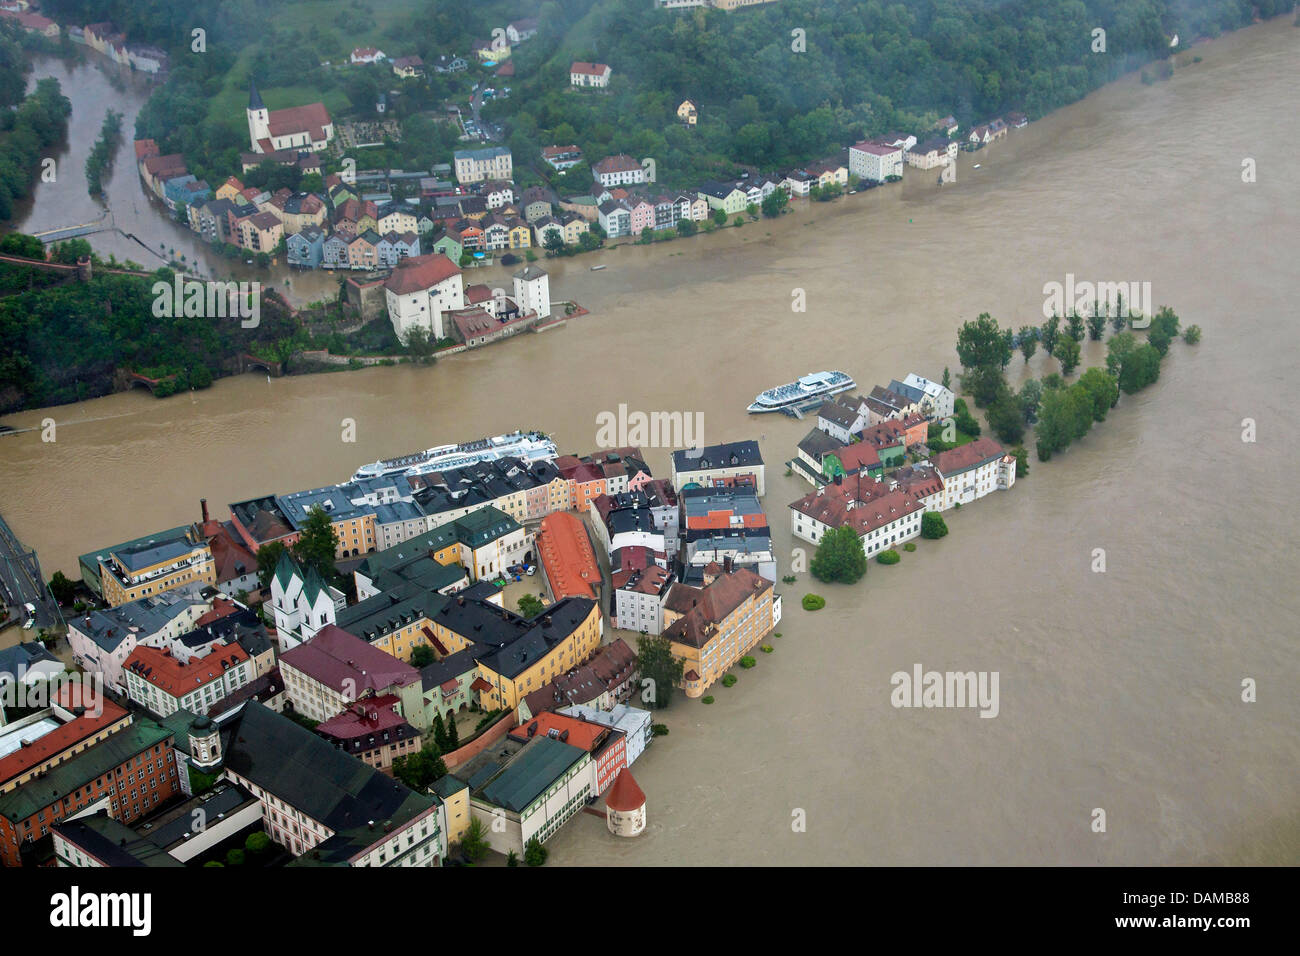 confluence of rivers Inn, Danube and Ilz in Passau flooded in June 2013, Germany, Bavaria, Passau - Stock Image